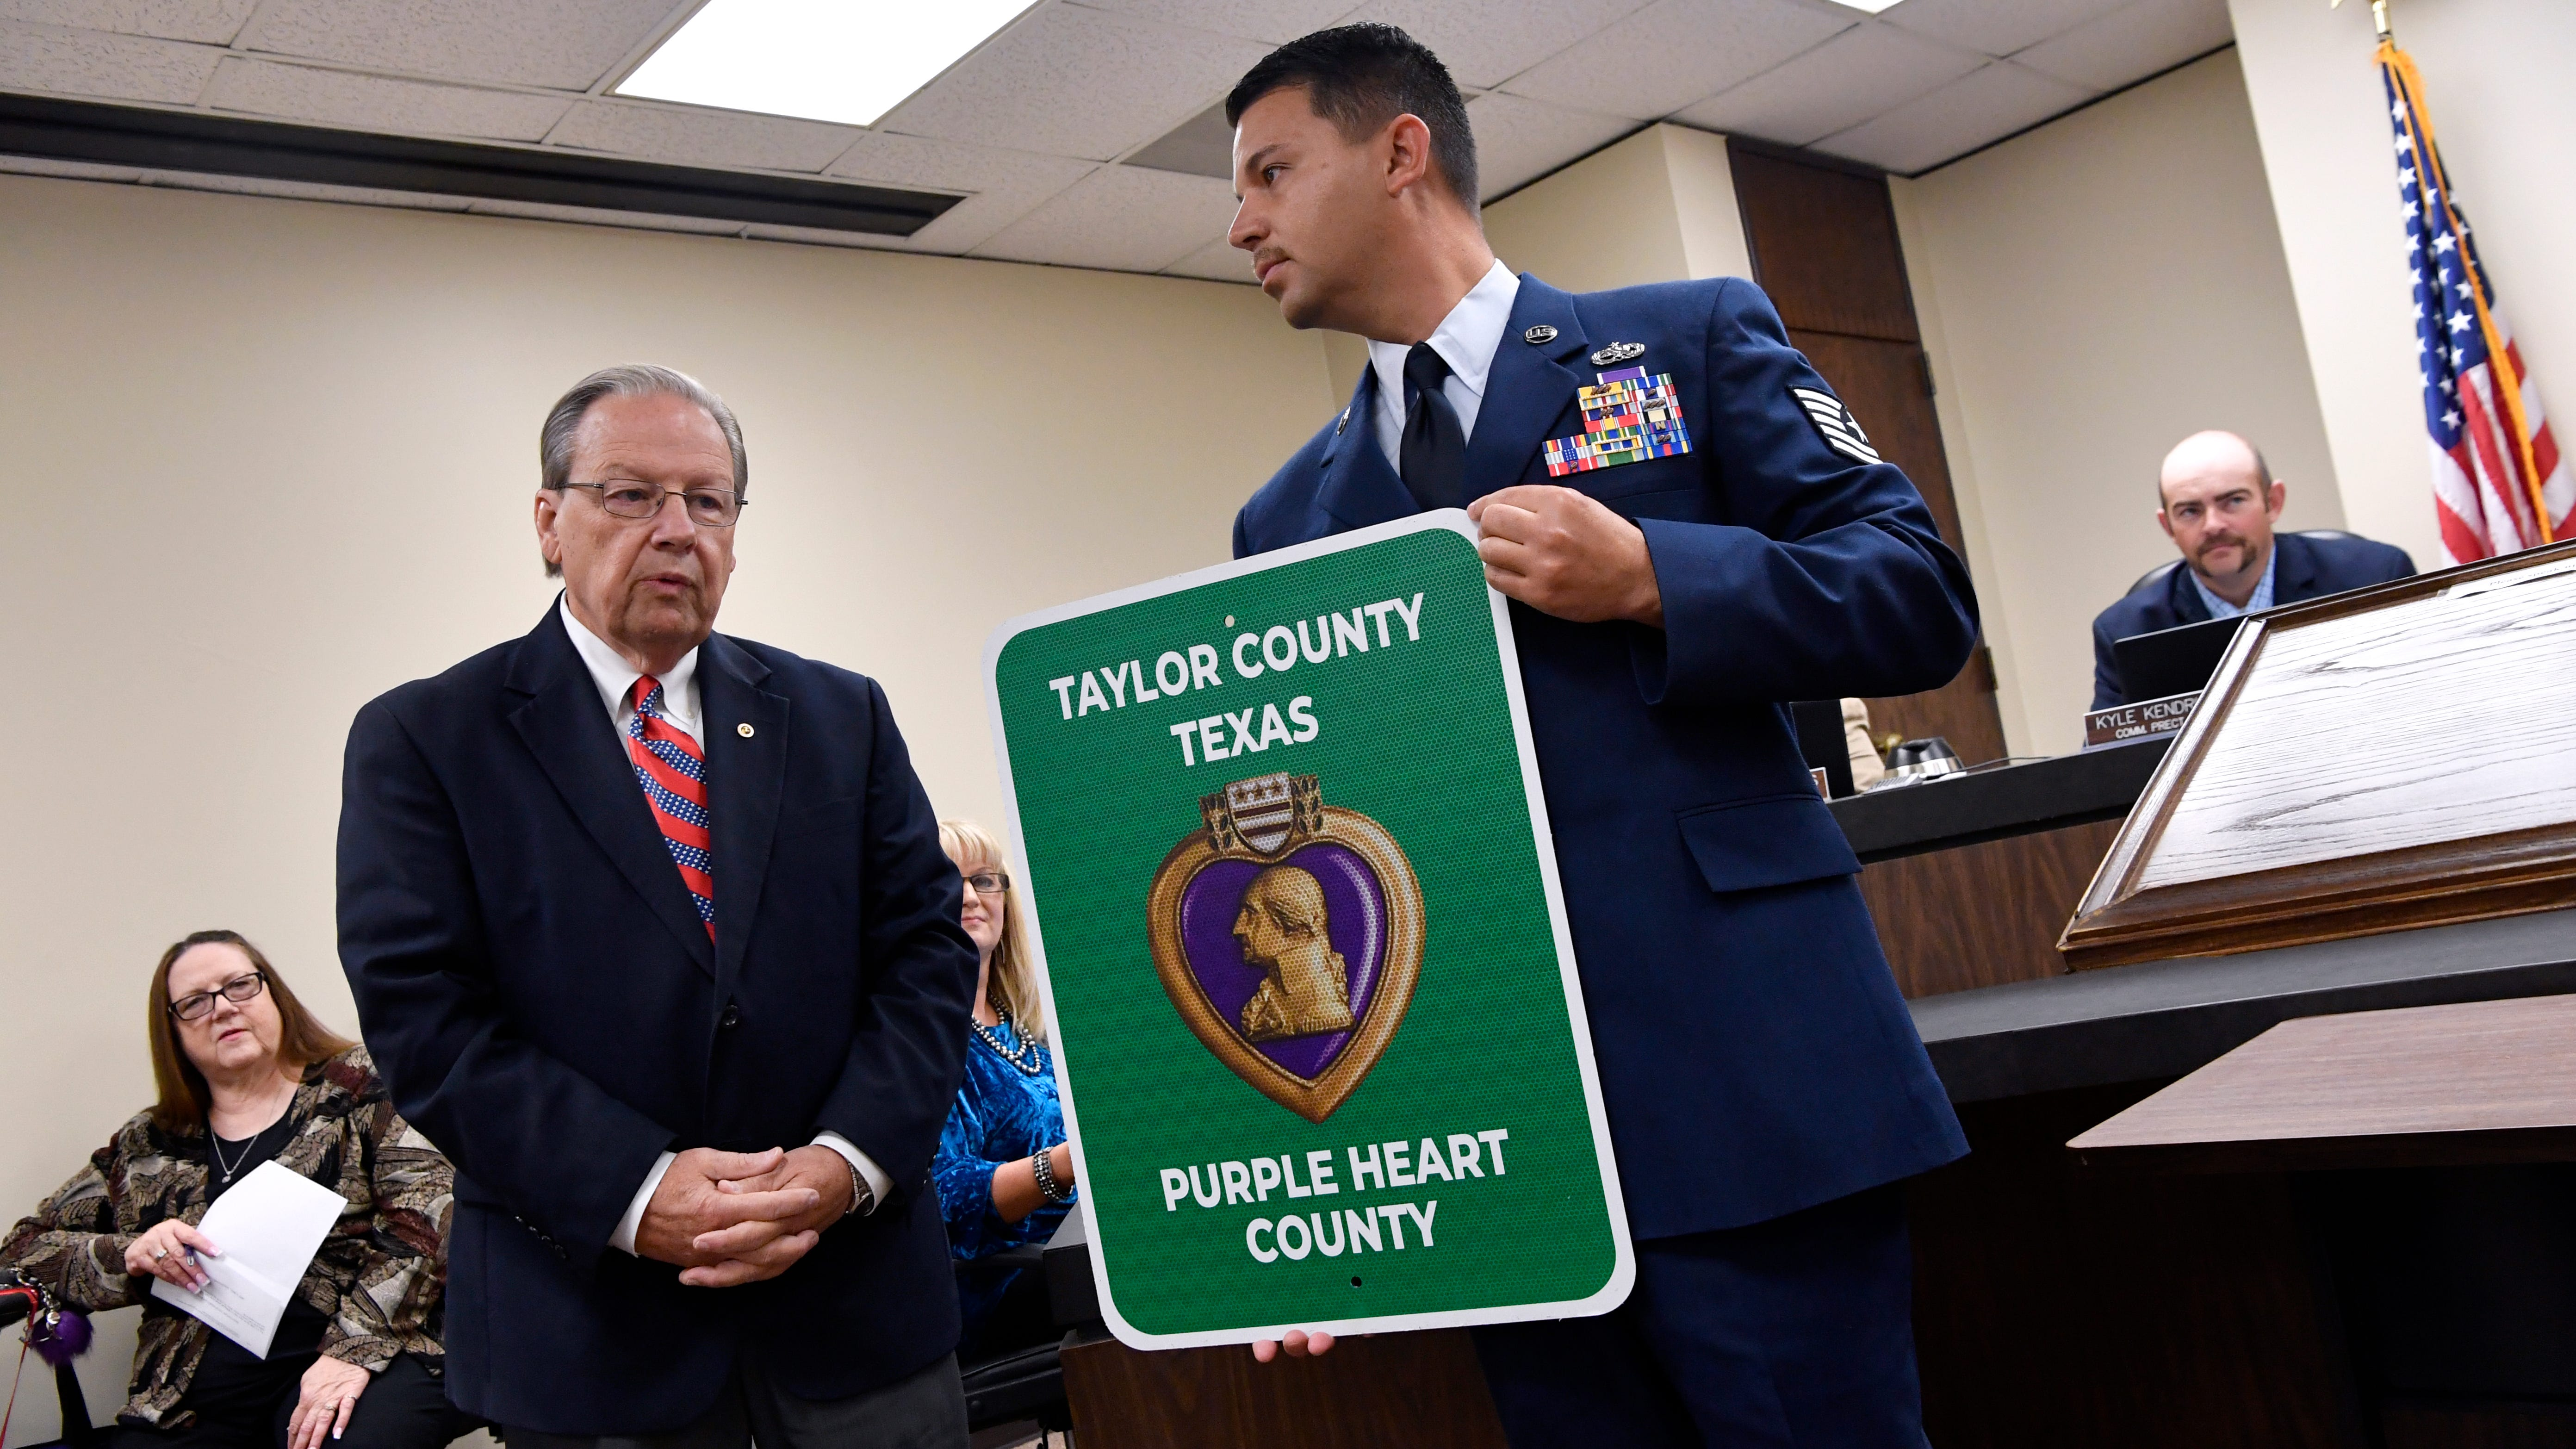 Air Force Tsgt. Jesus Soto, the commander of Chapter #1937 of the Military Order of the Purple Heart, stands beside Taylor County Judge Downing Bolls after the county's designation as a Purple Heart County during Tuesday's meeting of the commissioners court Nov. 13, 2018.